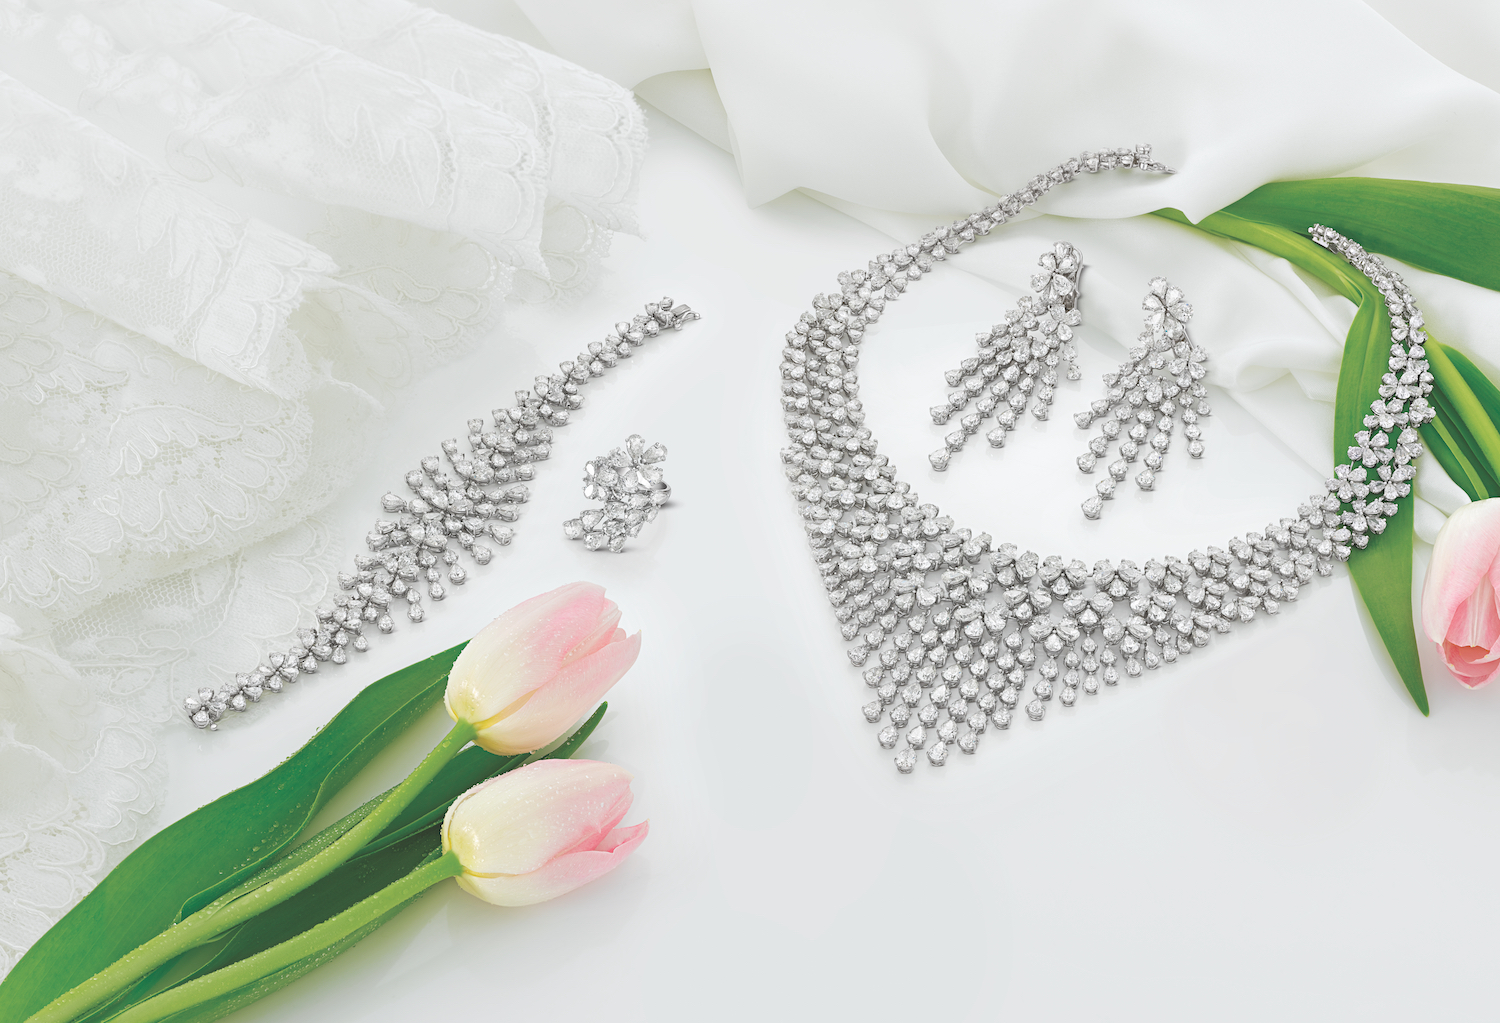 La Marquise diamond jewelry set